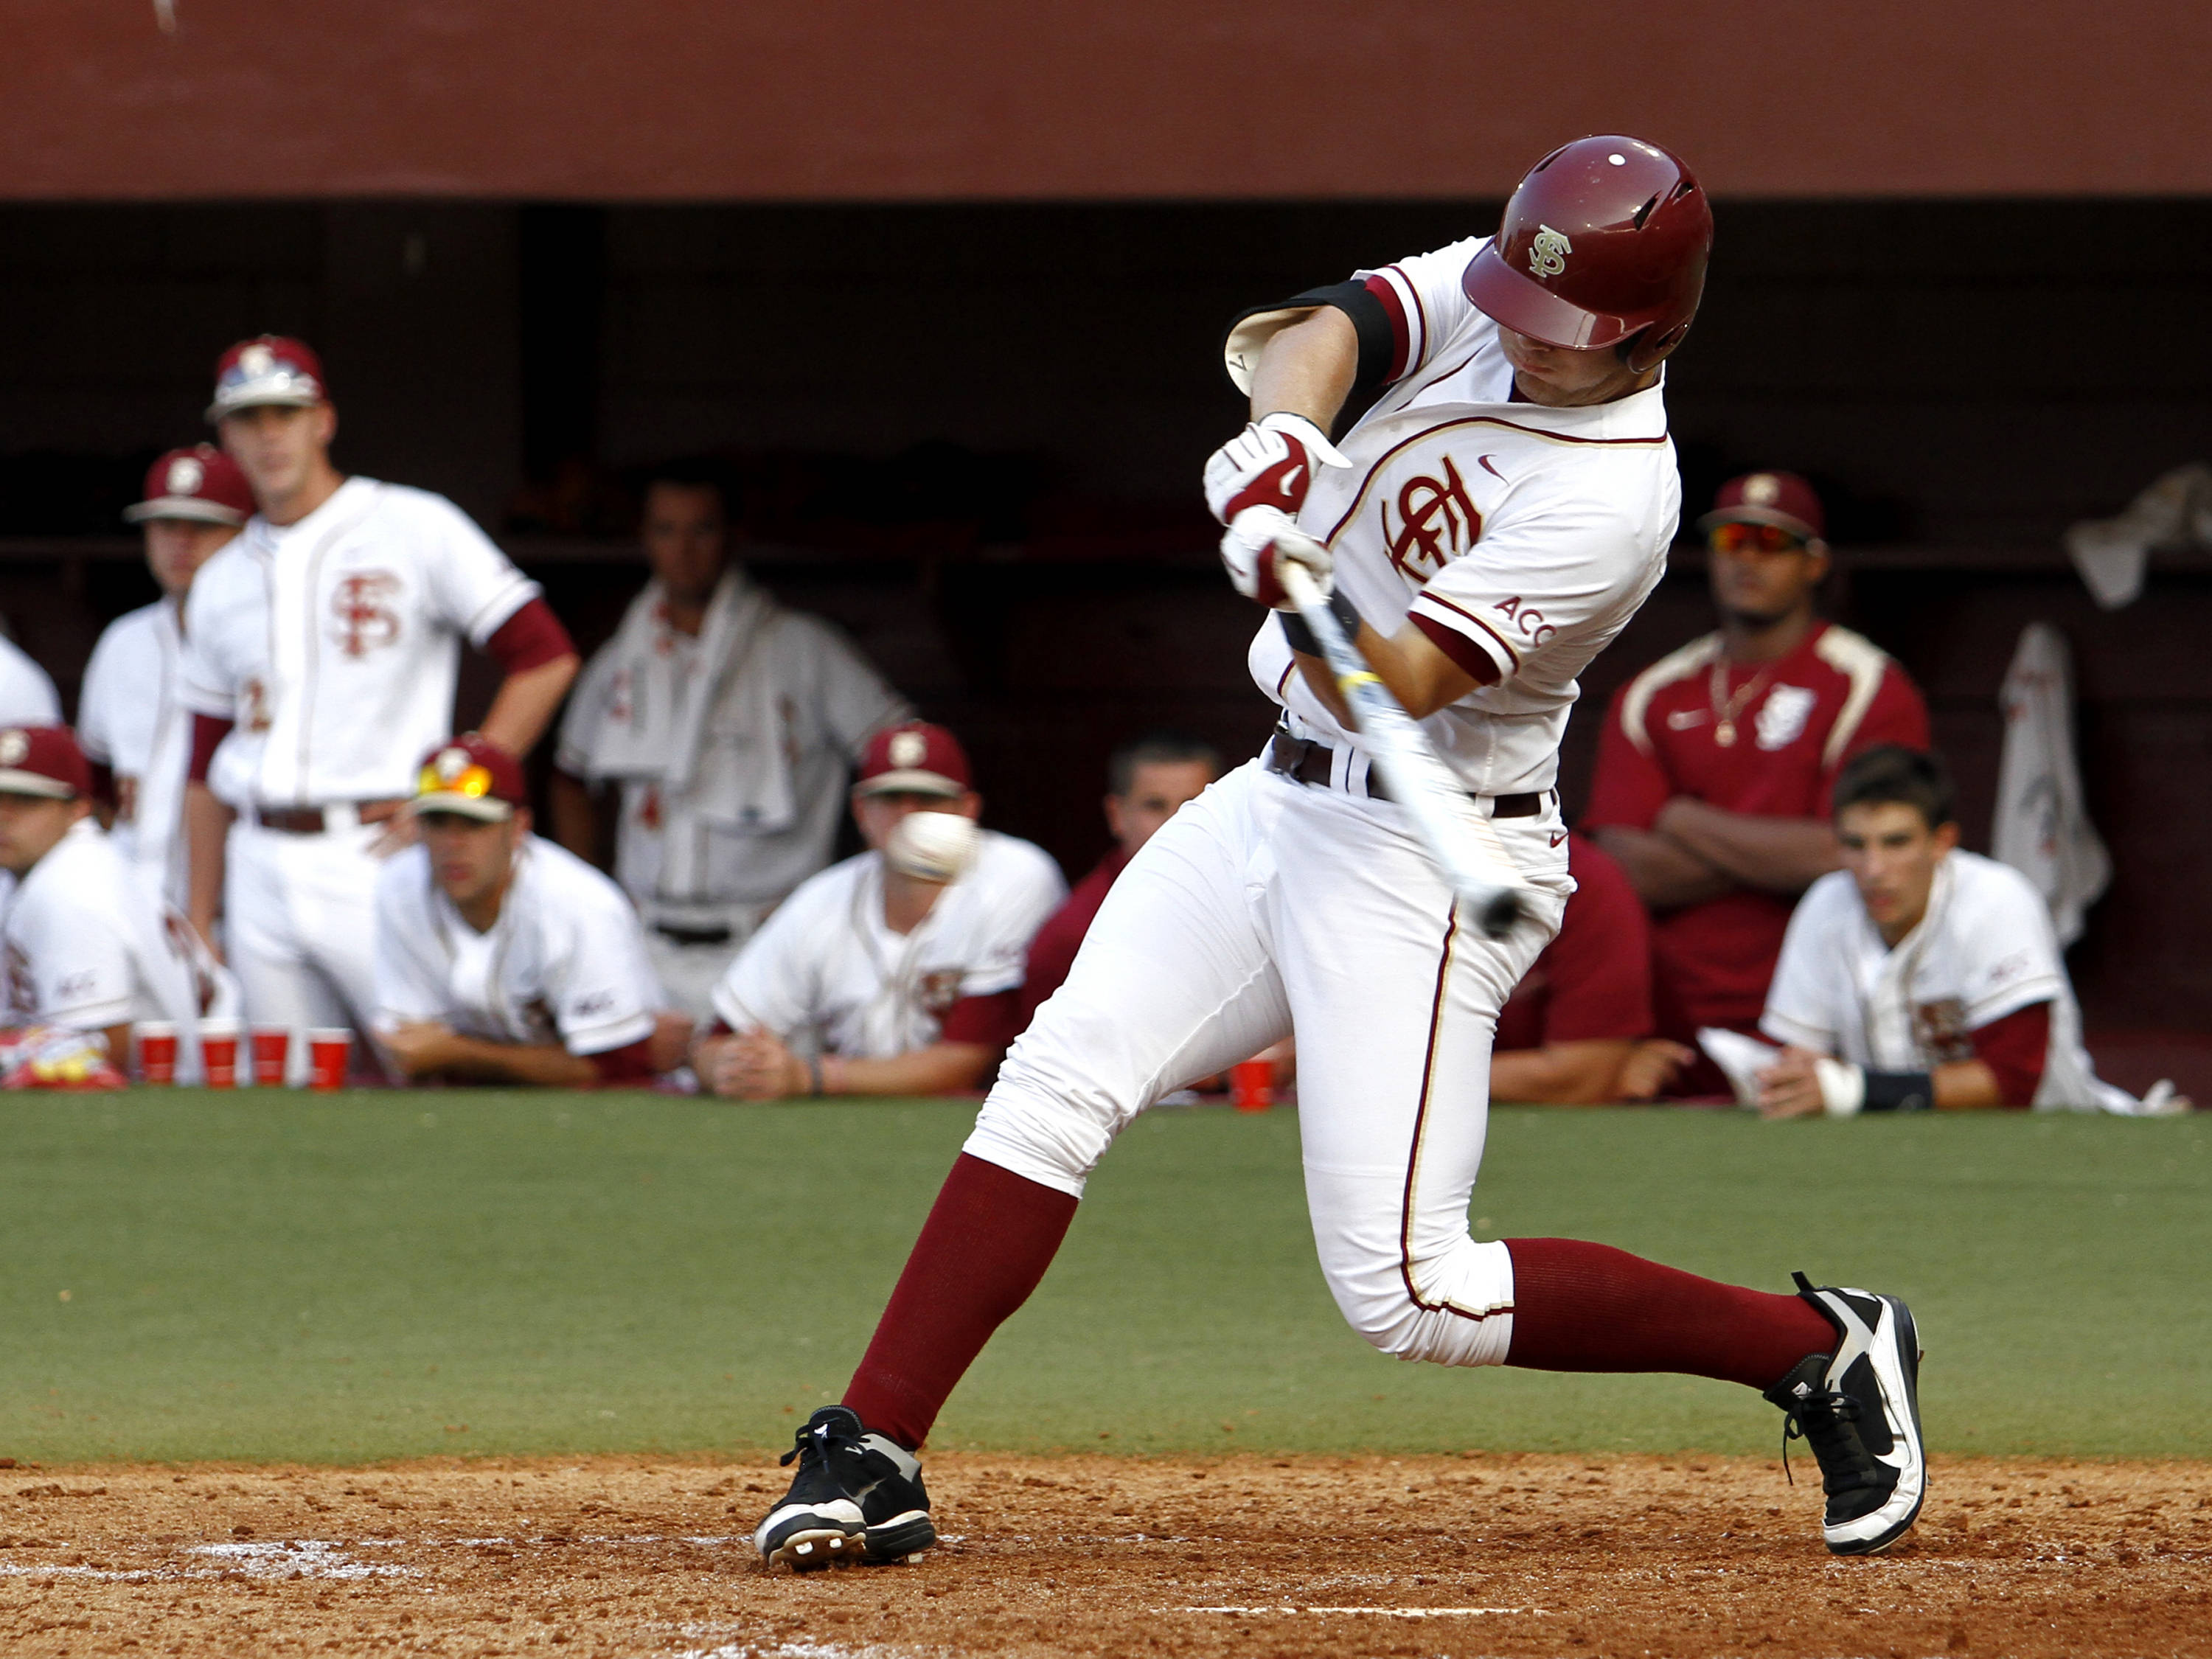 Designated hitter Parker Brunelle (7) stepping into a 2 run single in the Florida State 4 run 5th inning